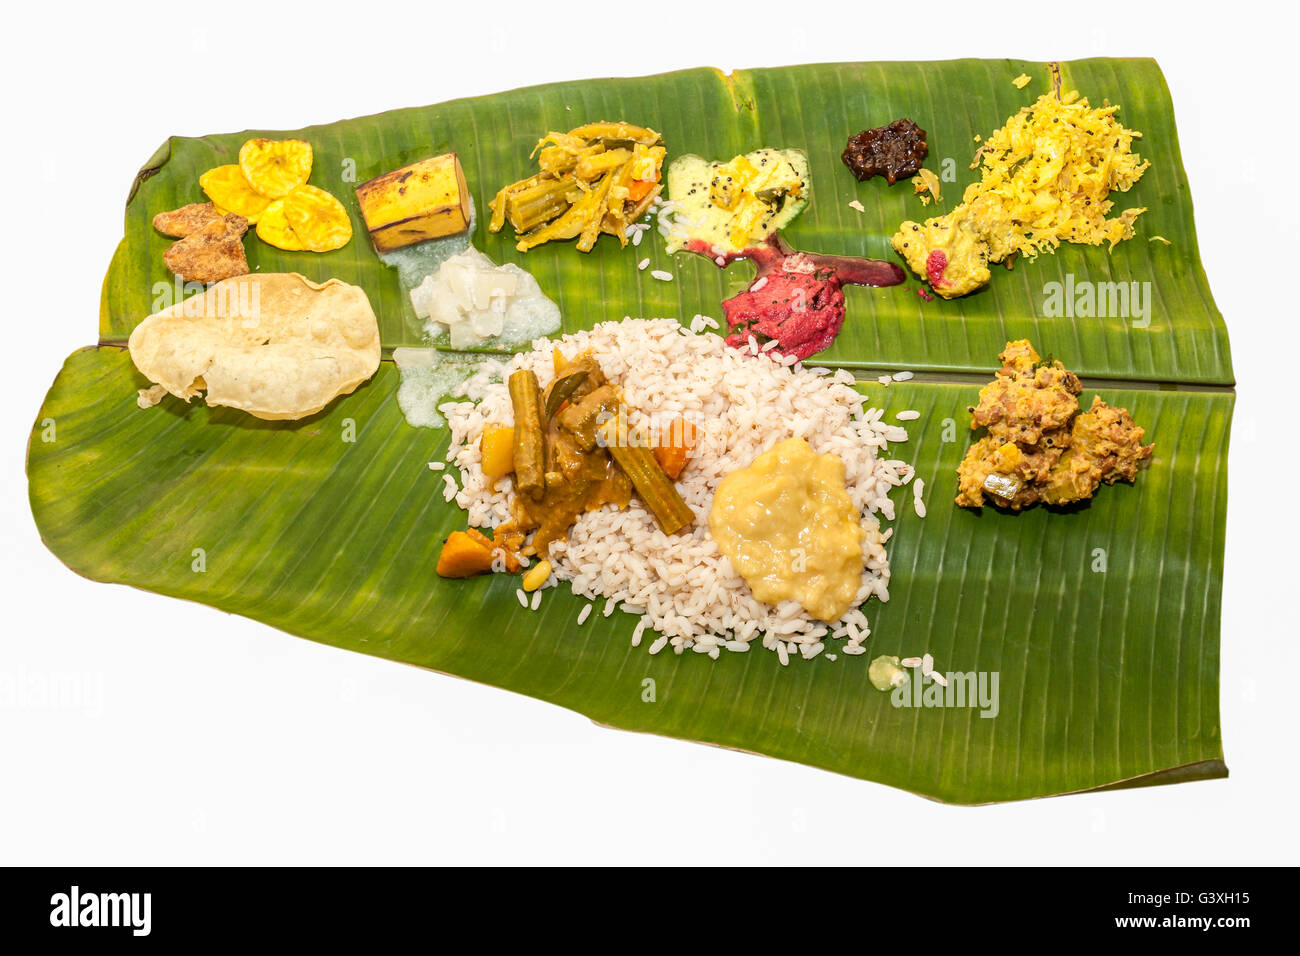 Kerala Onam Sadhya. Kerala vegeterian meals in banana leaf which is usually served on the occasion of hindu festivals - Stock Image